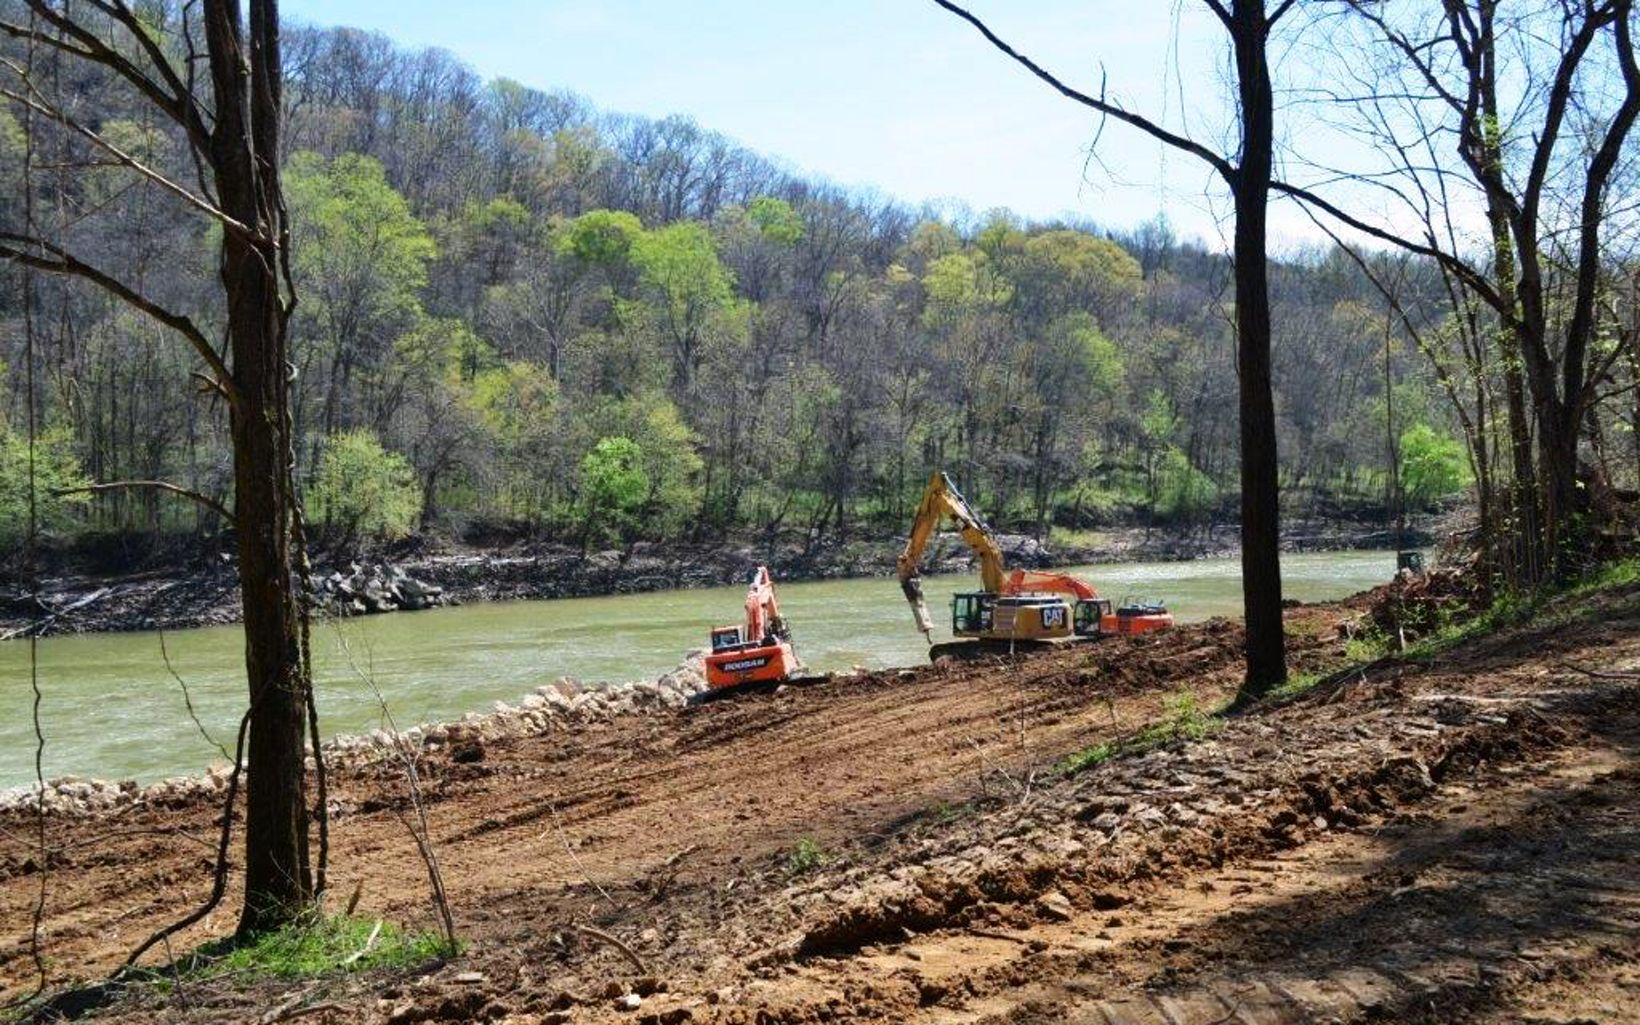 Heavy equipment sits along the side of a river.